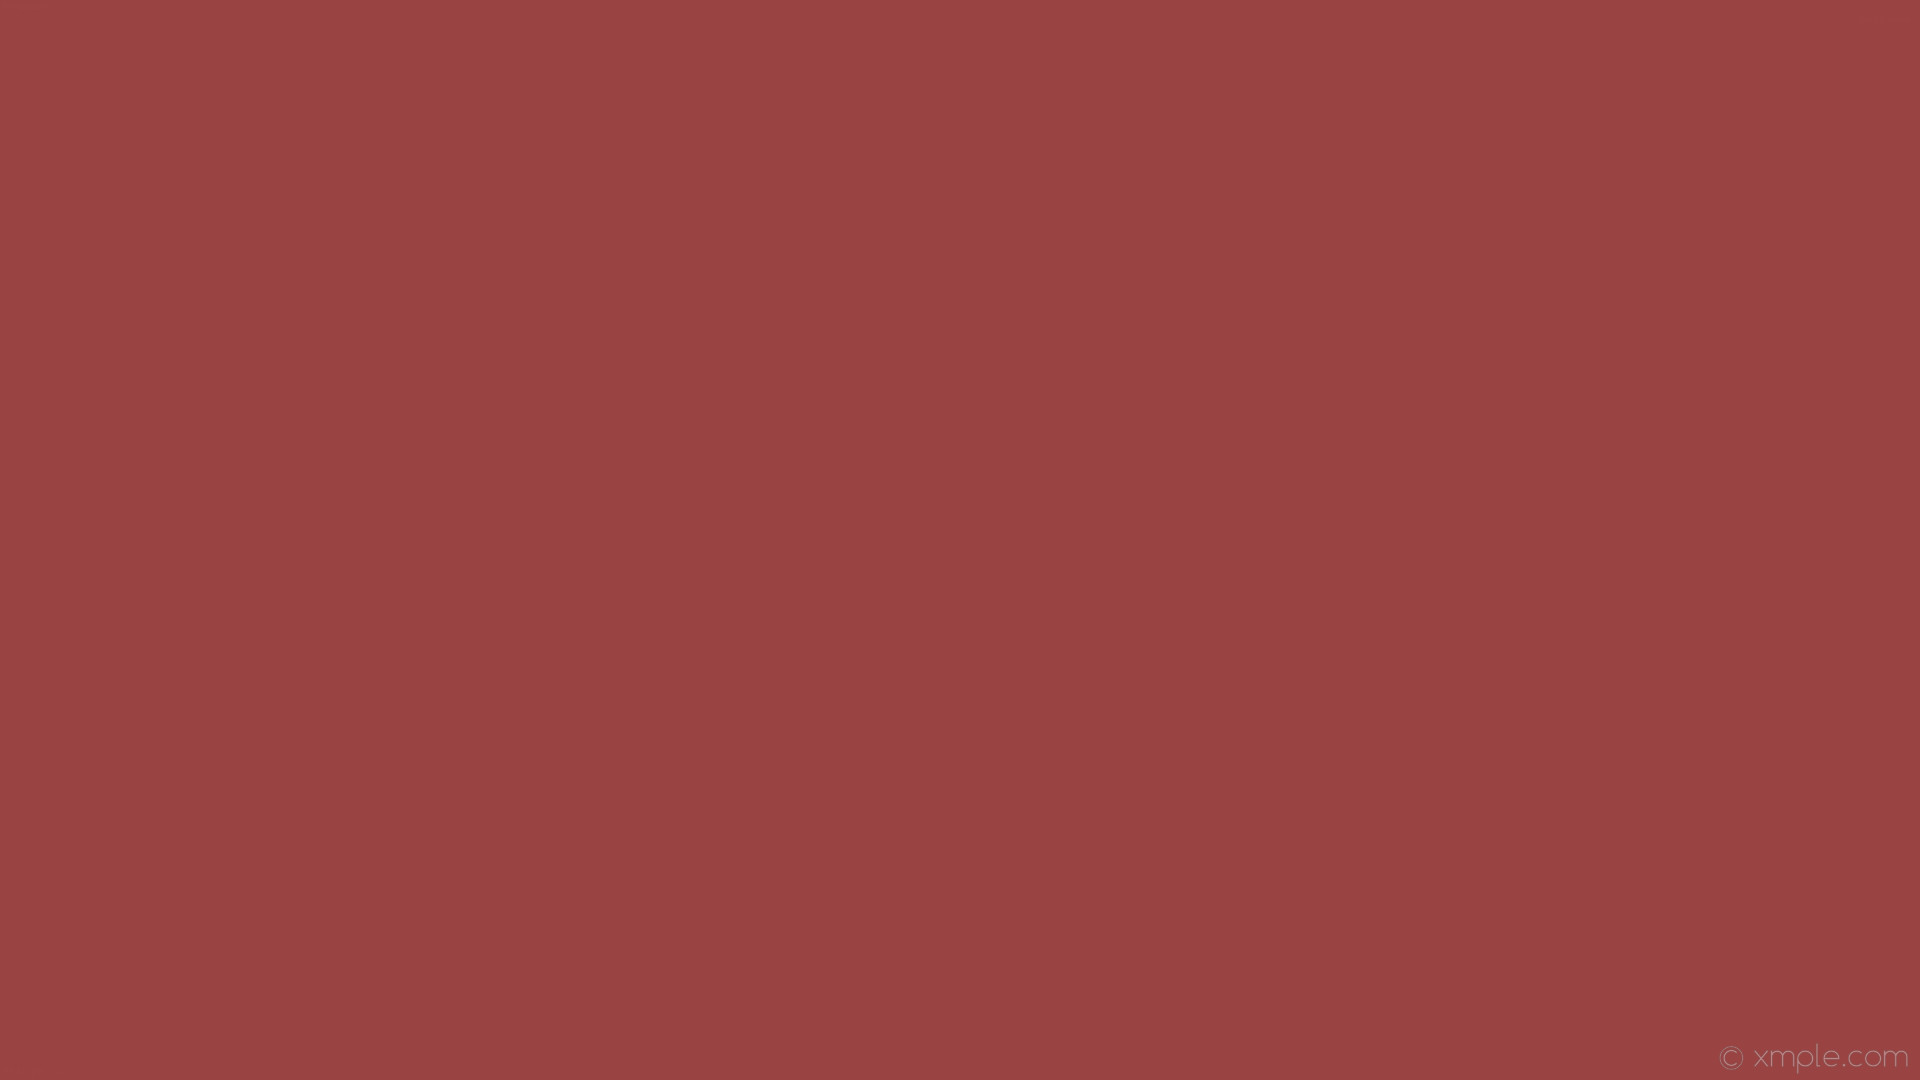 1920x1080 wallpaper plain single red one colour solid color #994443